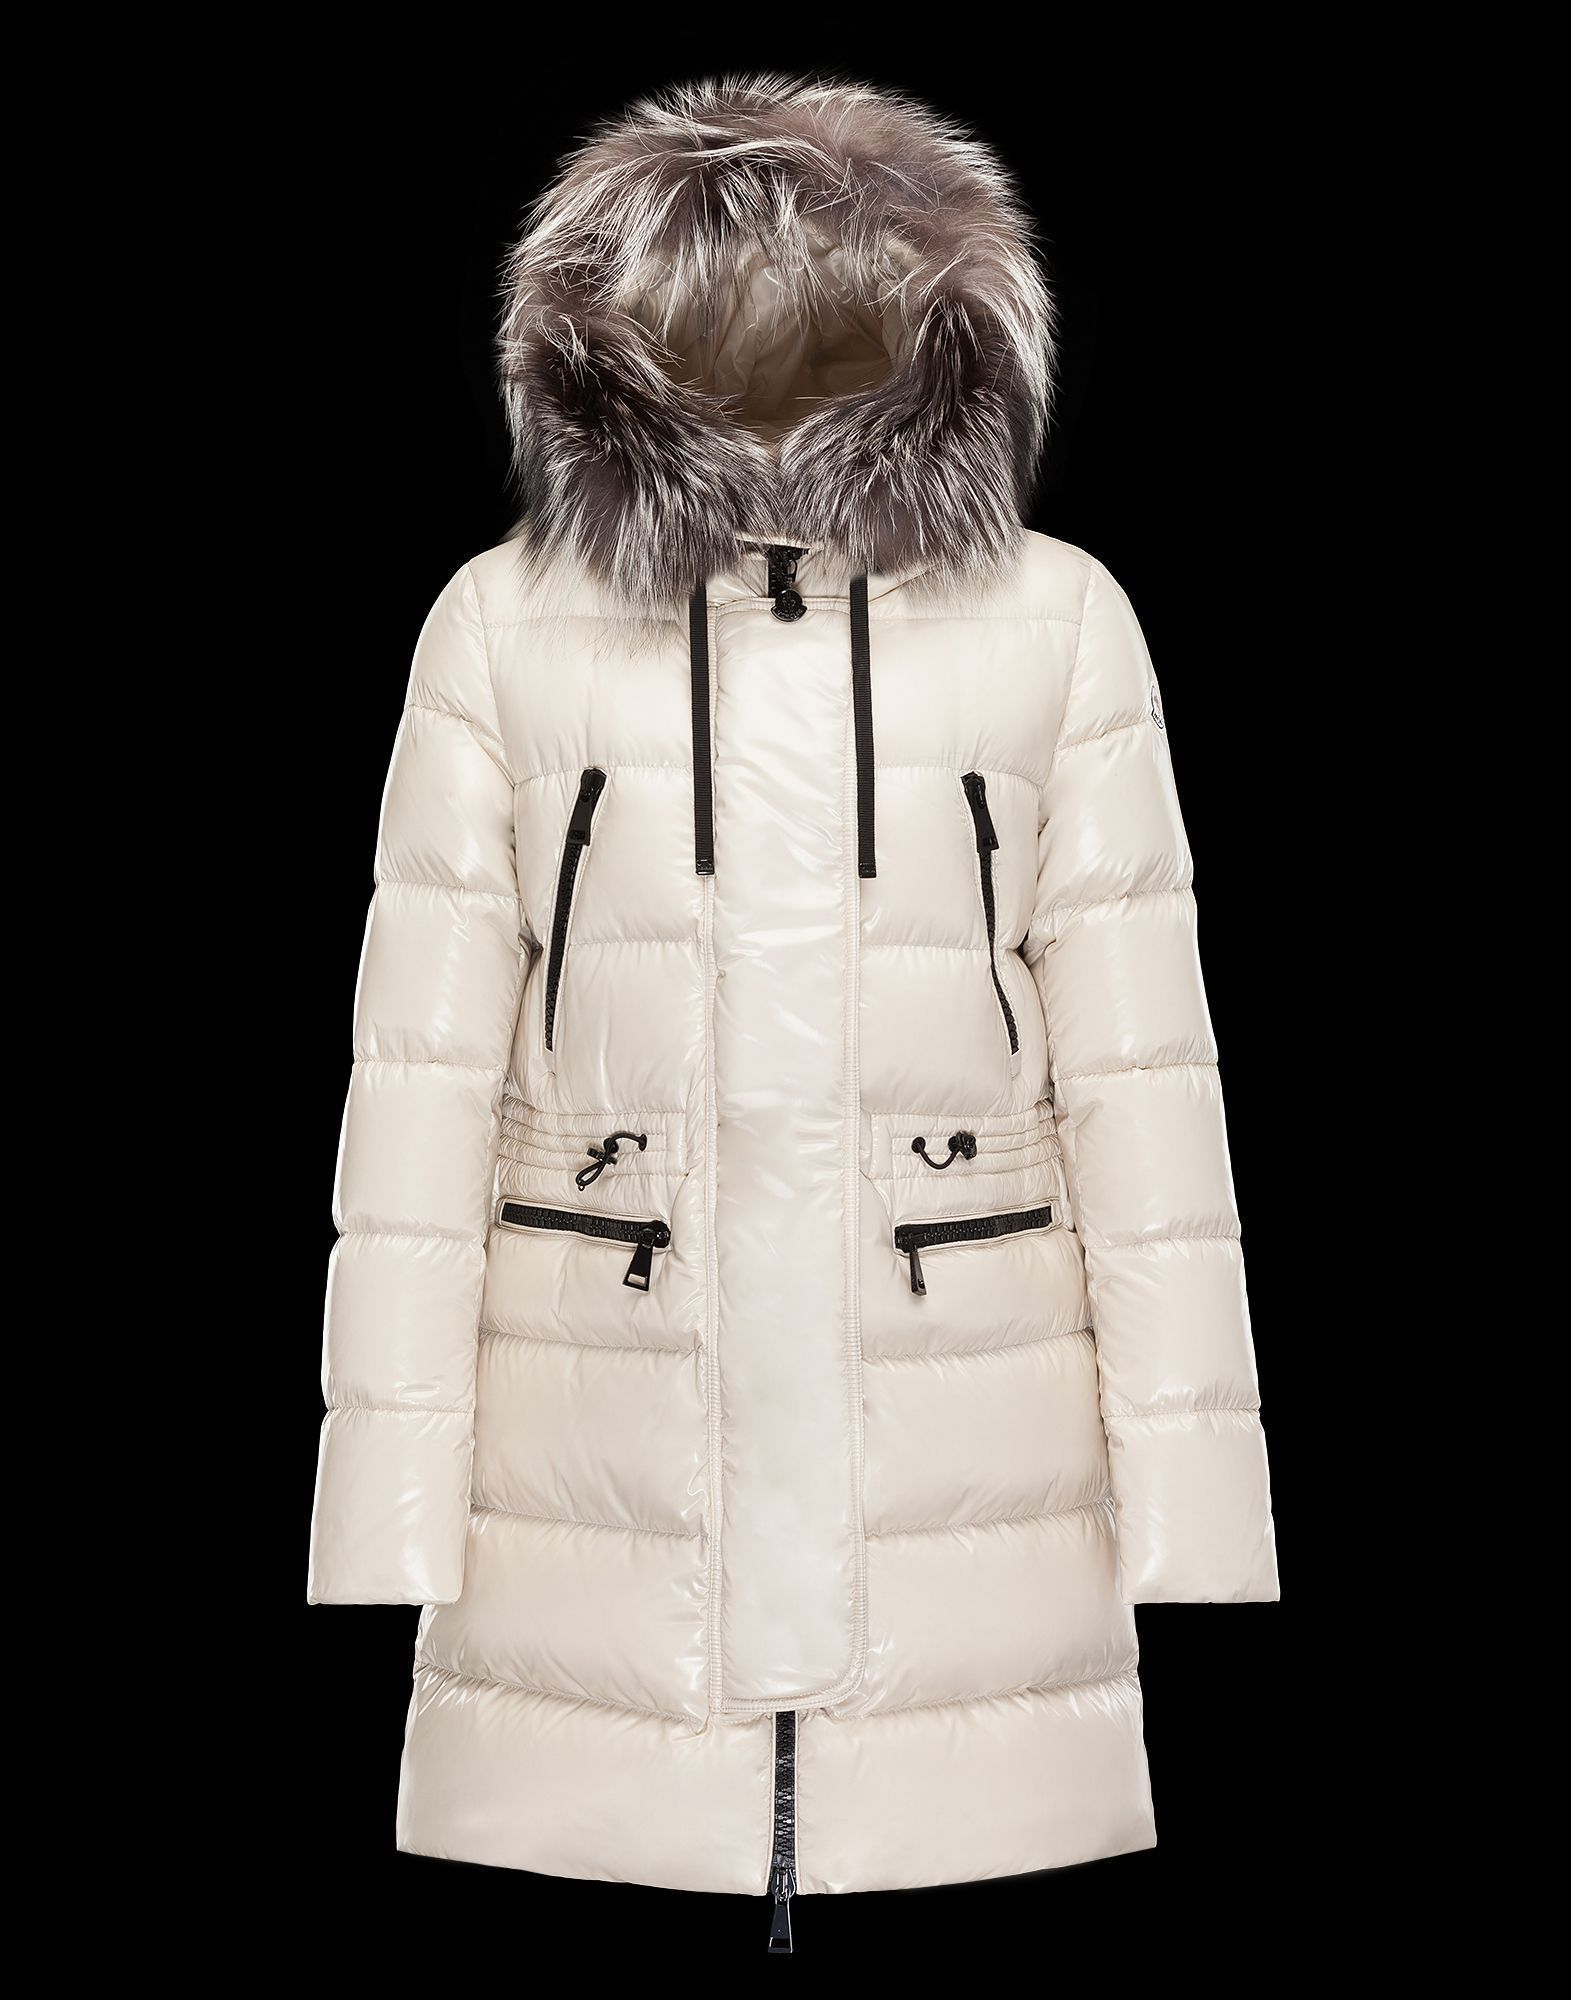 18e1c4f68071 MONCLER Down Jackets Size 0 1 2 Other struggles BEIGE size 2